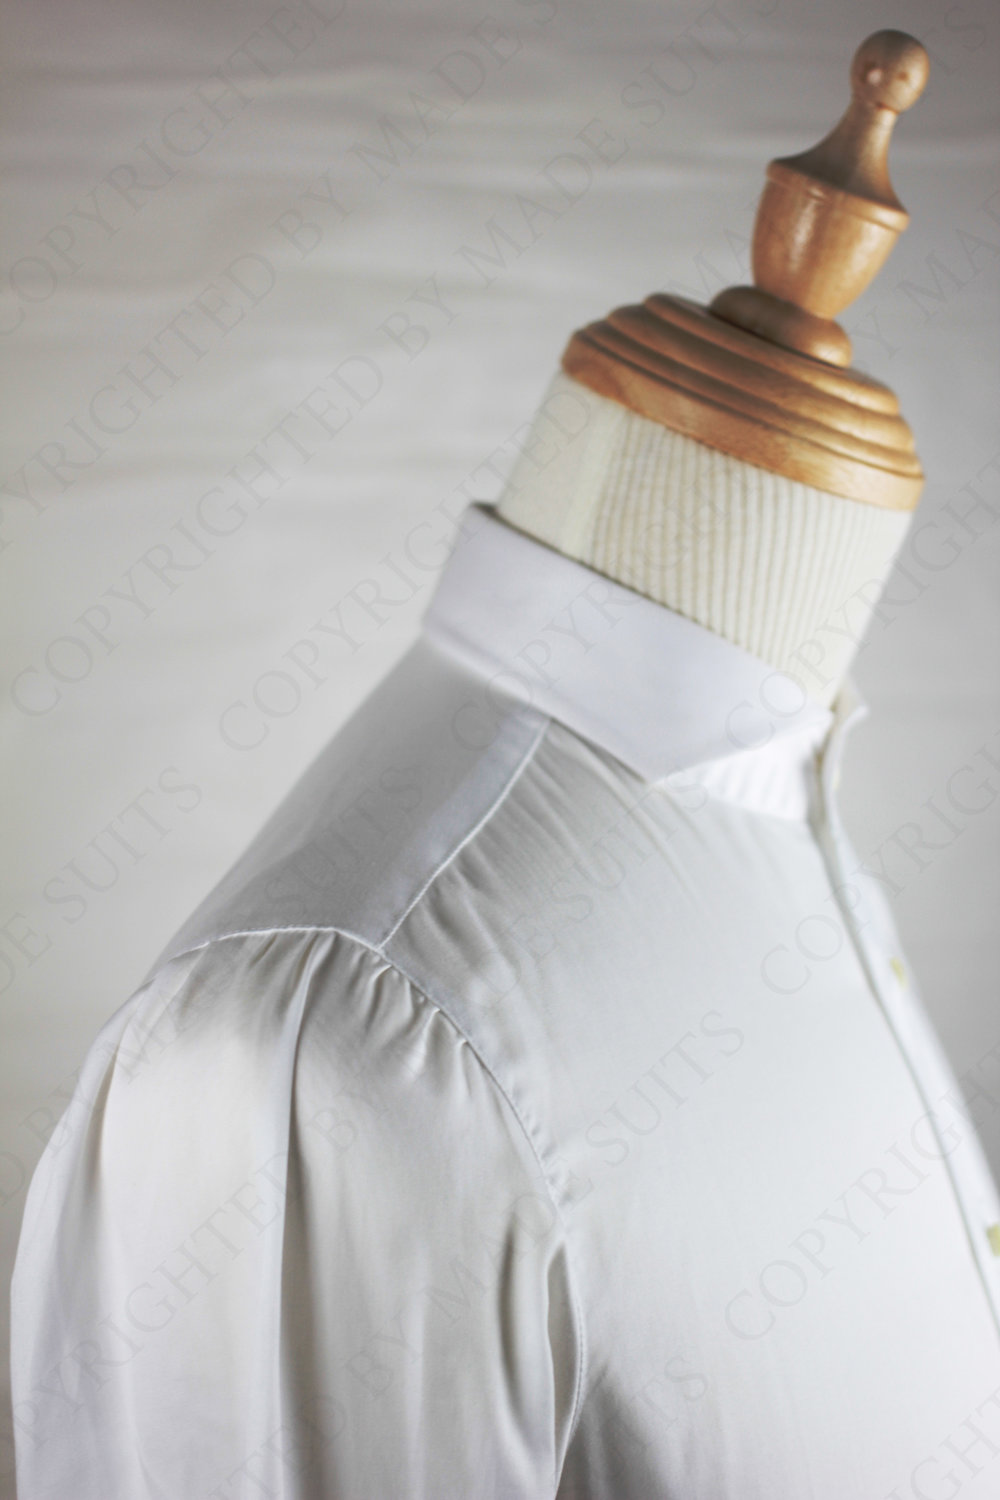 25 steps by hand our neapolitan shirt shoulders are unique and creates an ahletic look for the individual